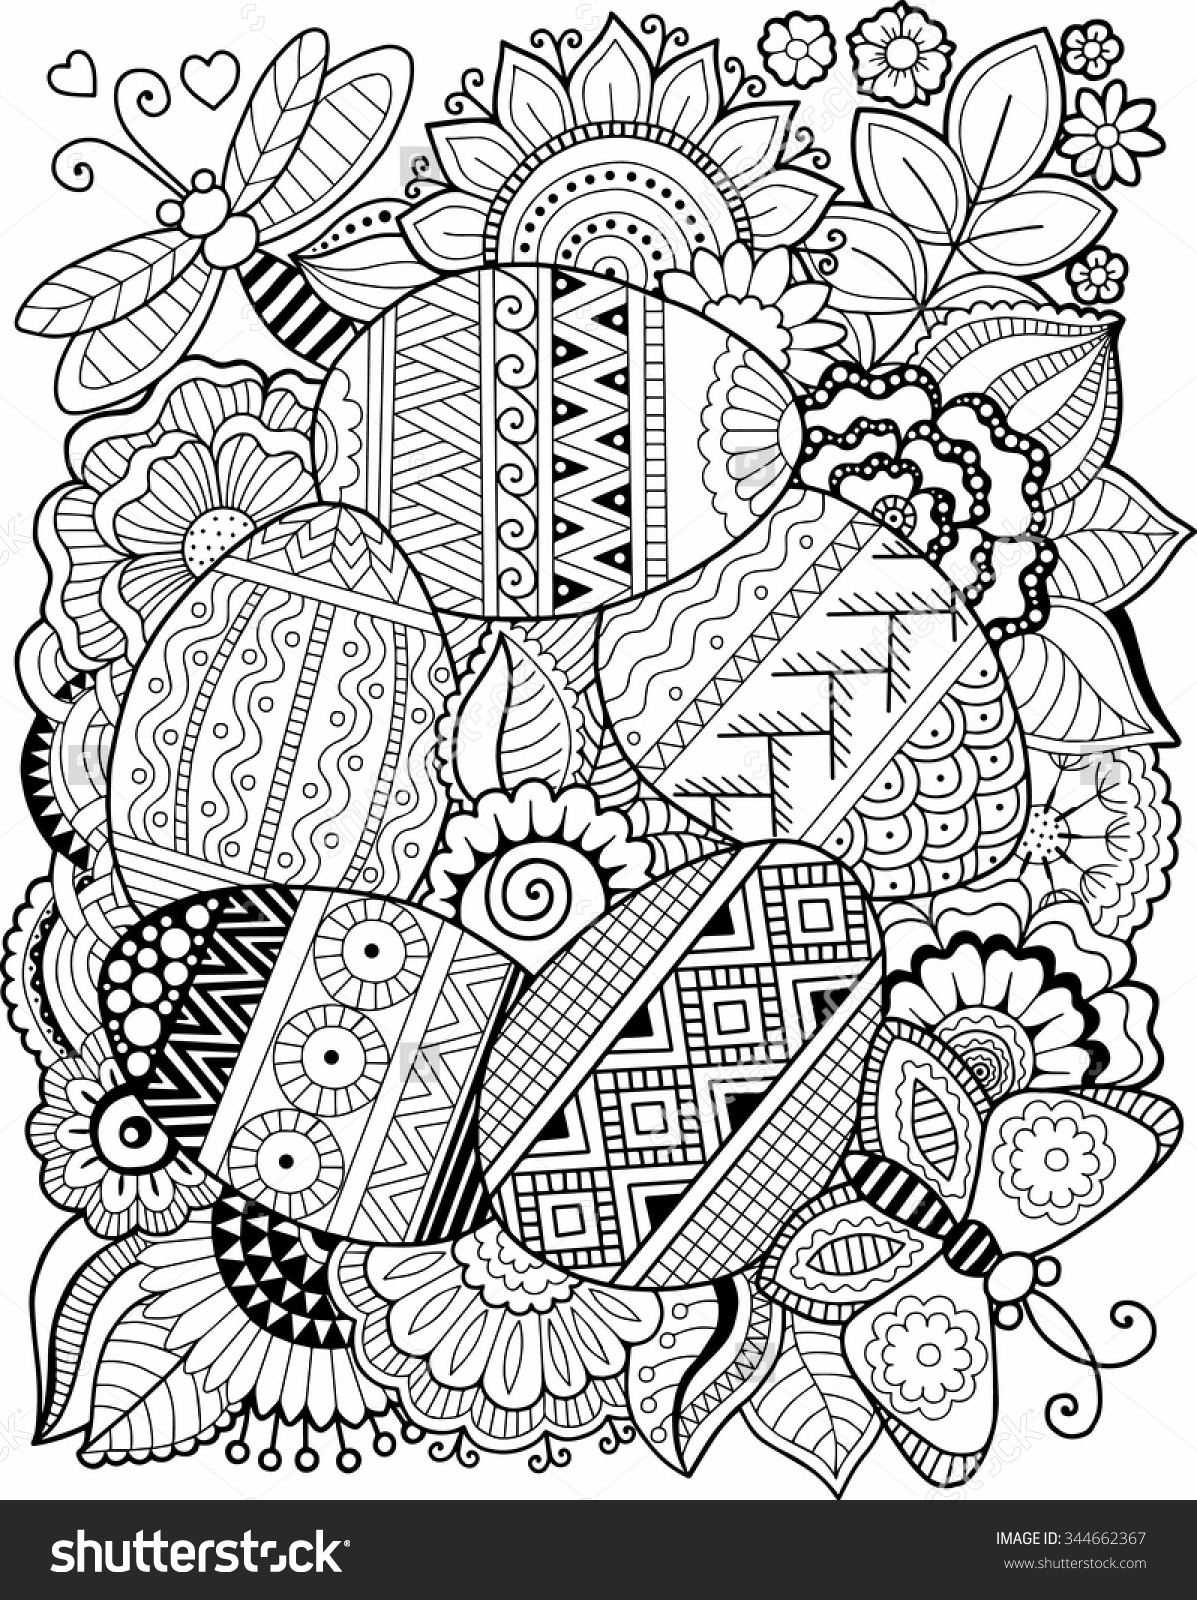 1197x1600 Adult Easter Coloring Pages Bloodbrothers Me